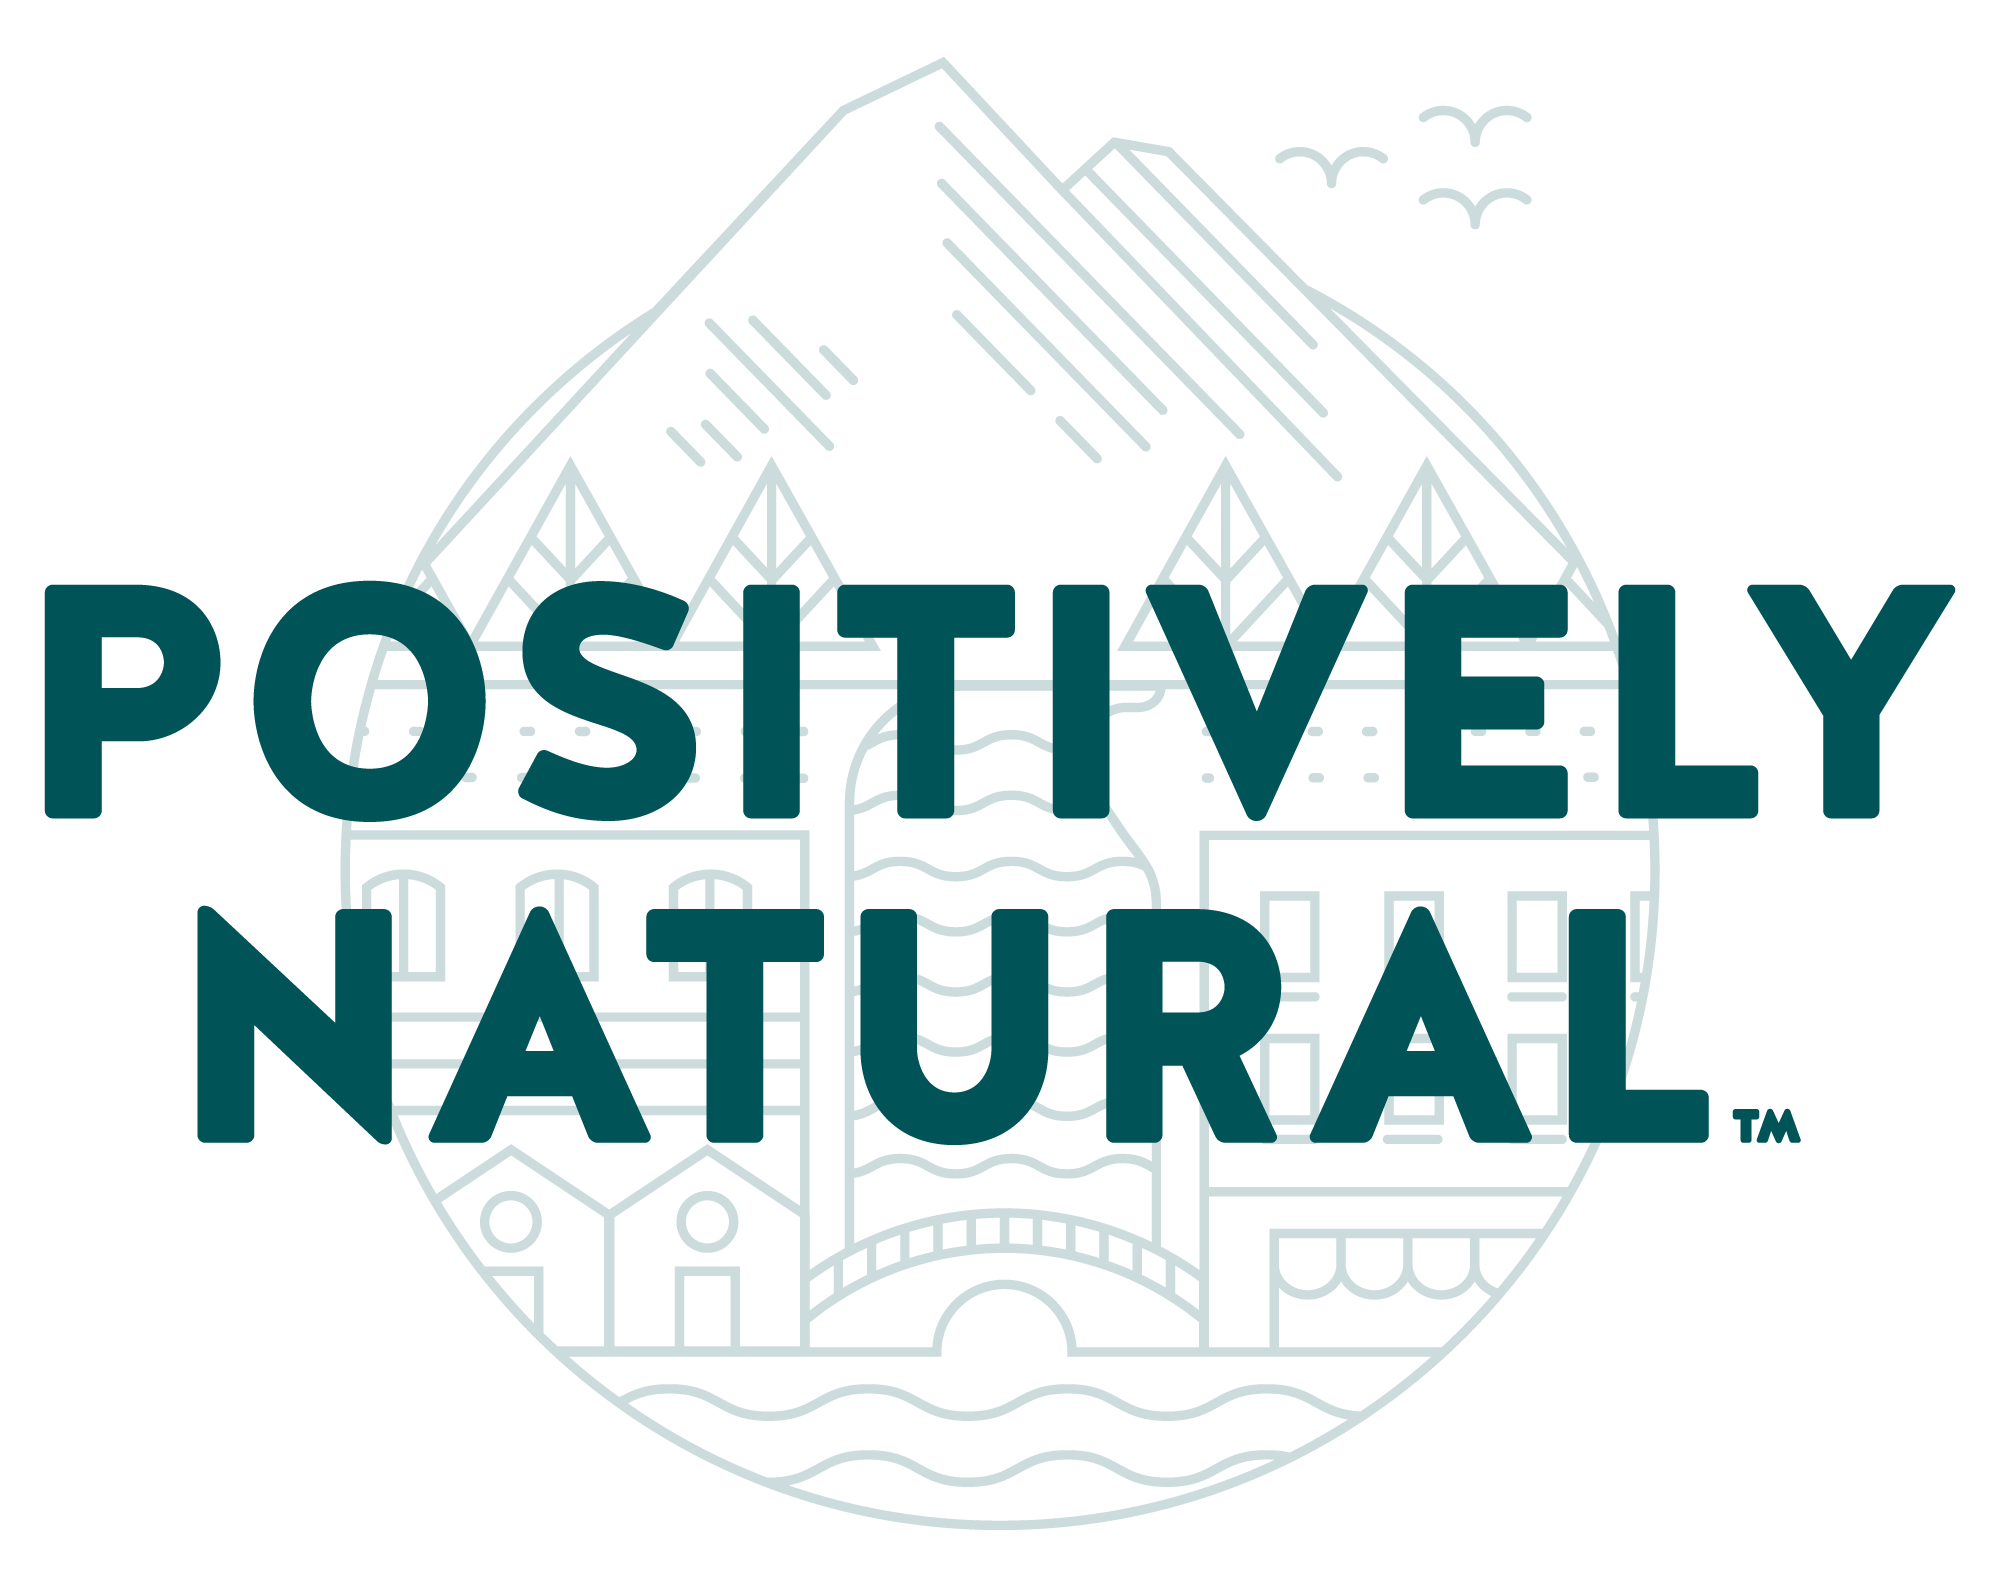 PositivelyNatural-Logomark-Logotype-RF-Color-Digital.png